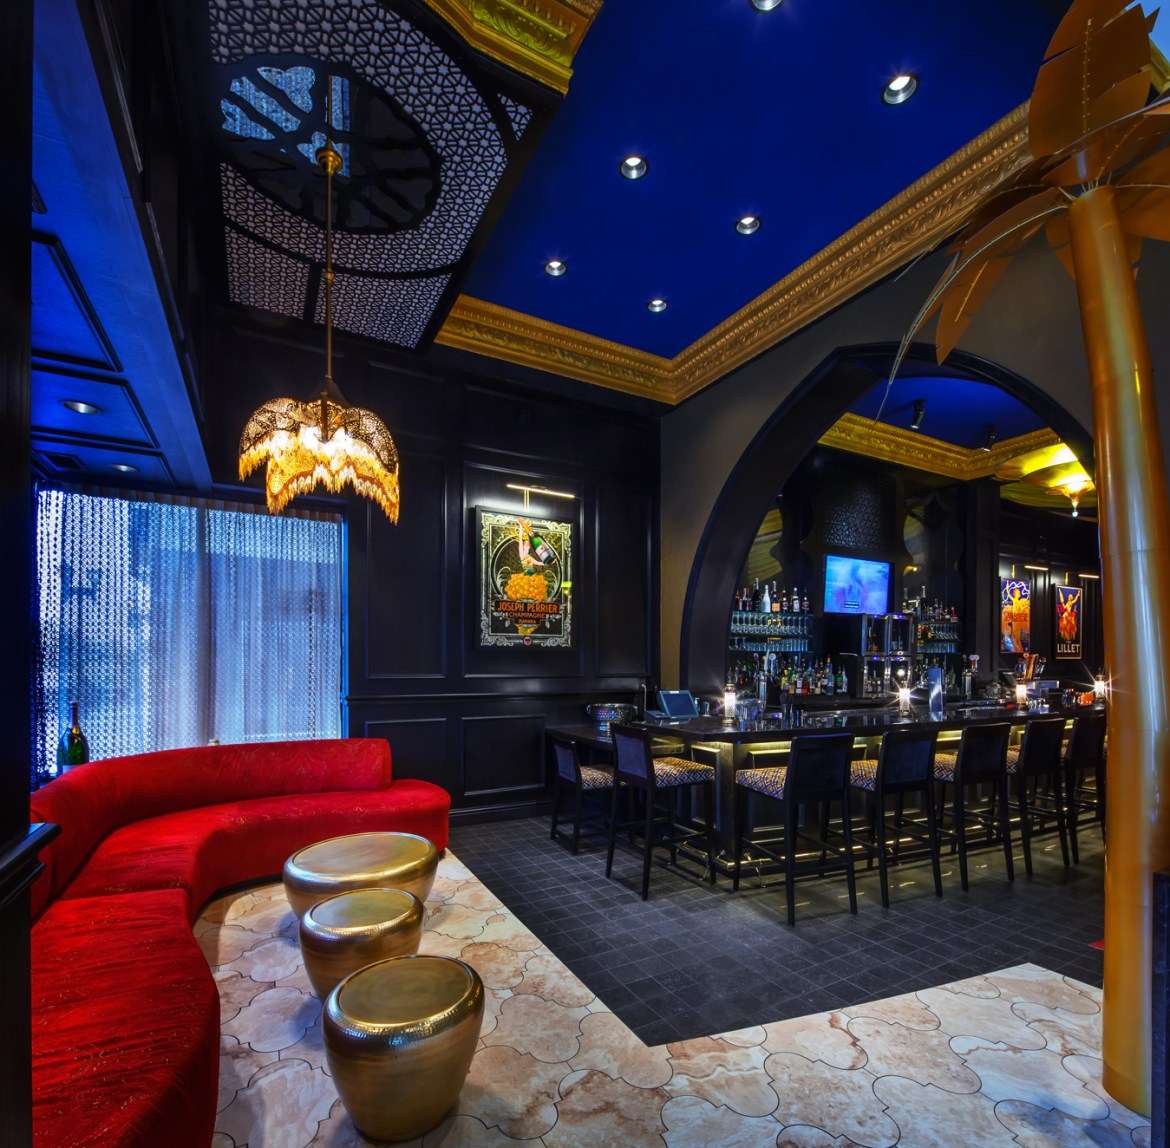 Gold palm trees and the sleek bar greet you when you enter the lounge.